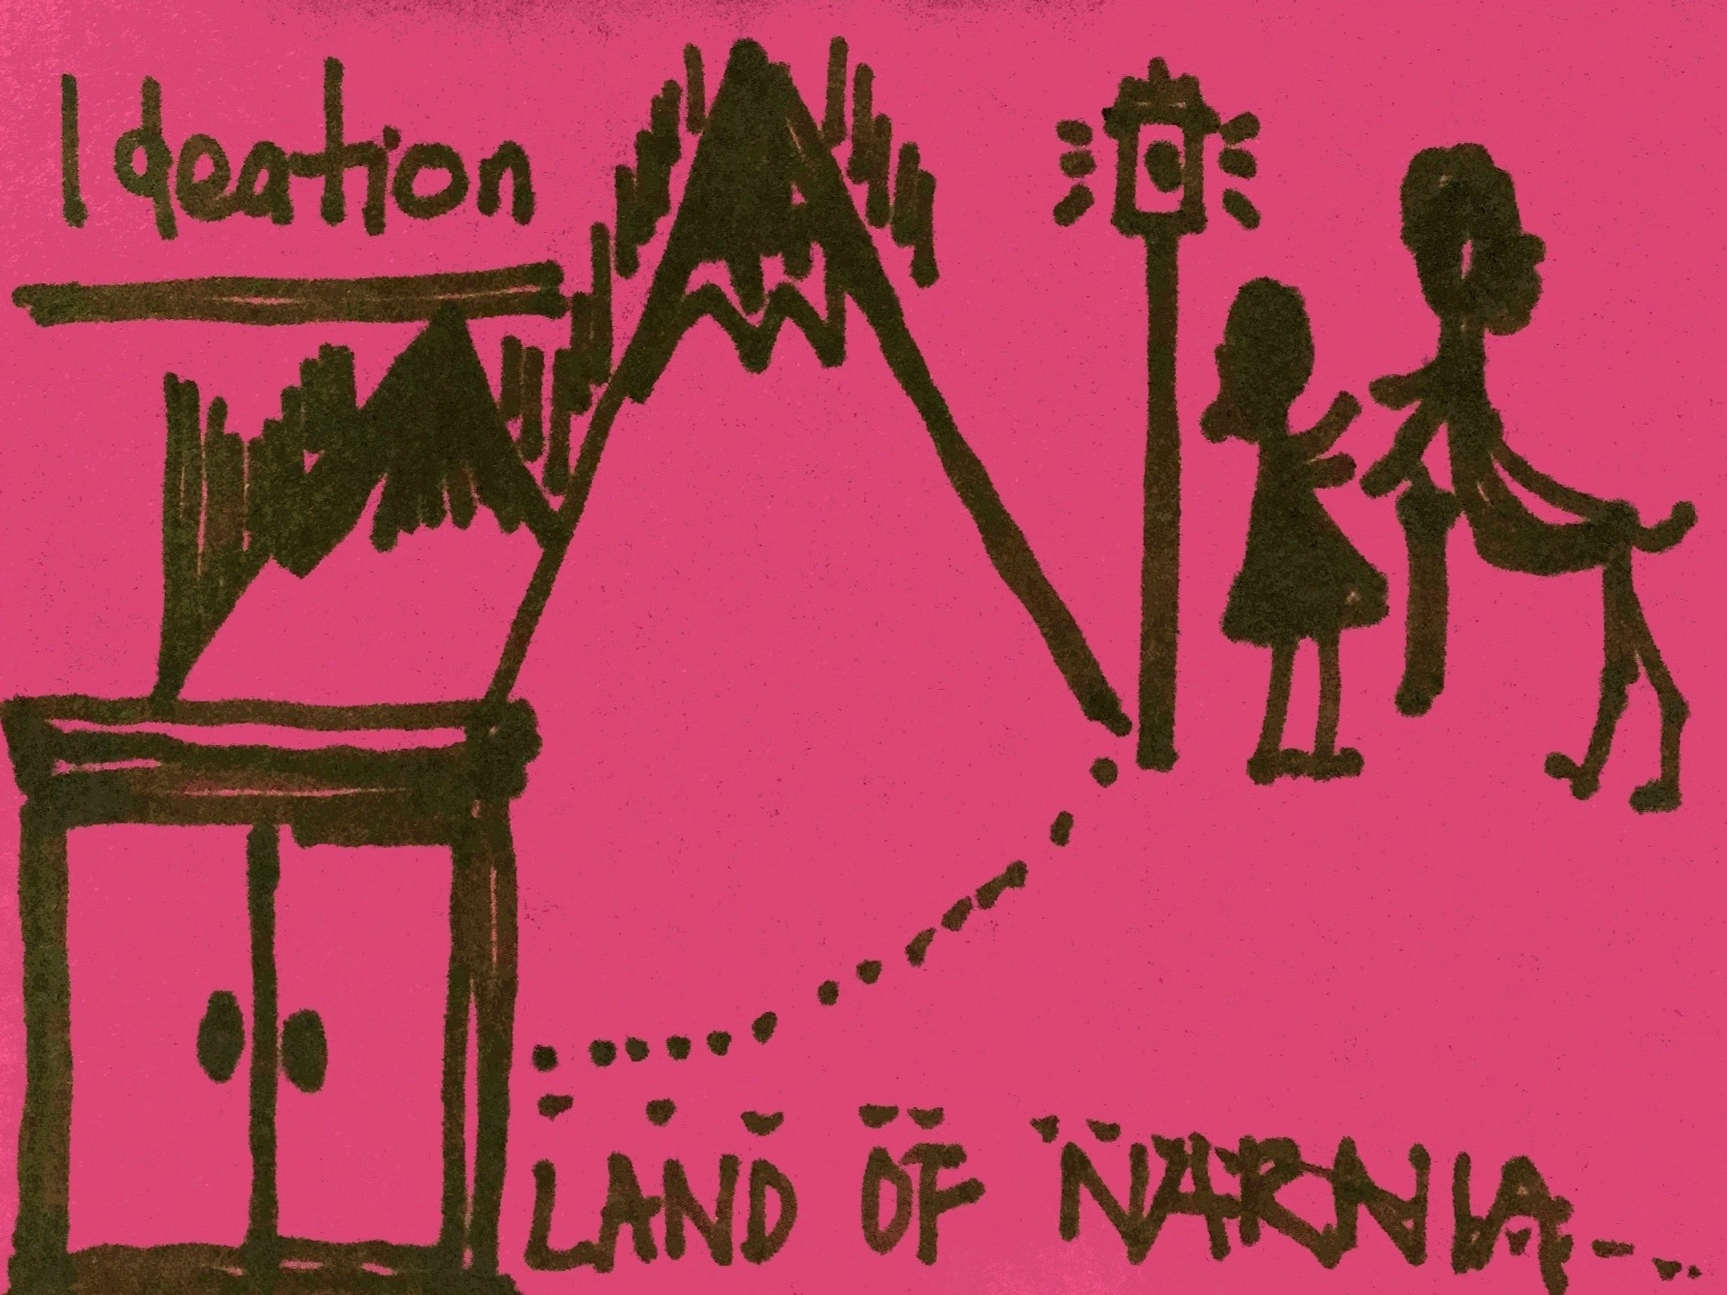 Ideation Strengthsfinder Singapore Land of Narnia